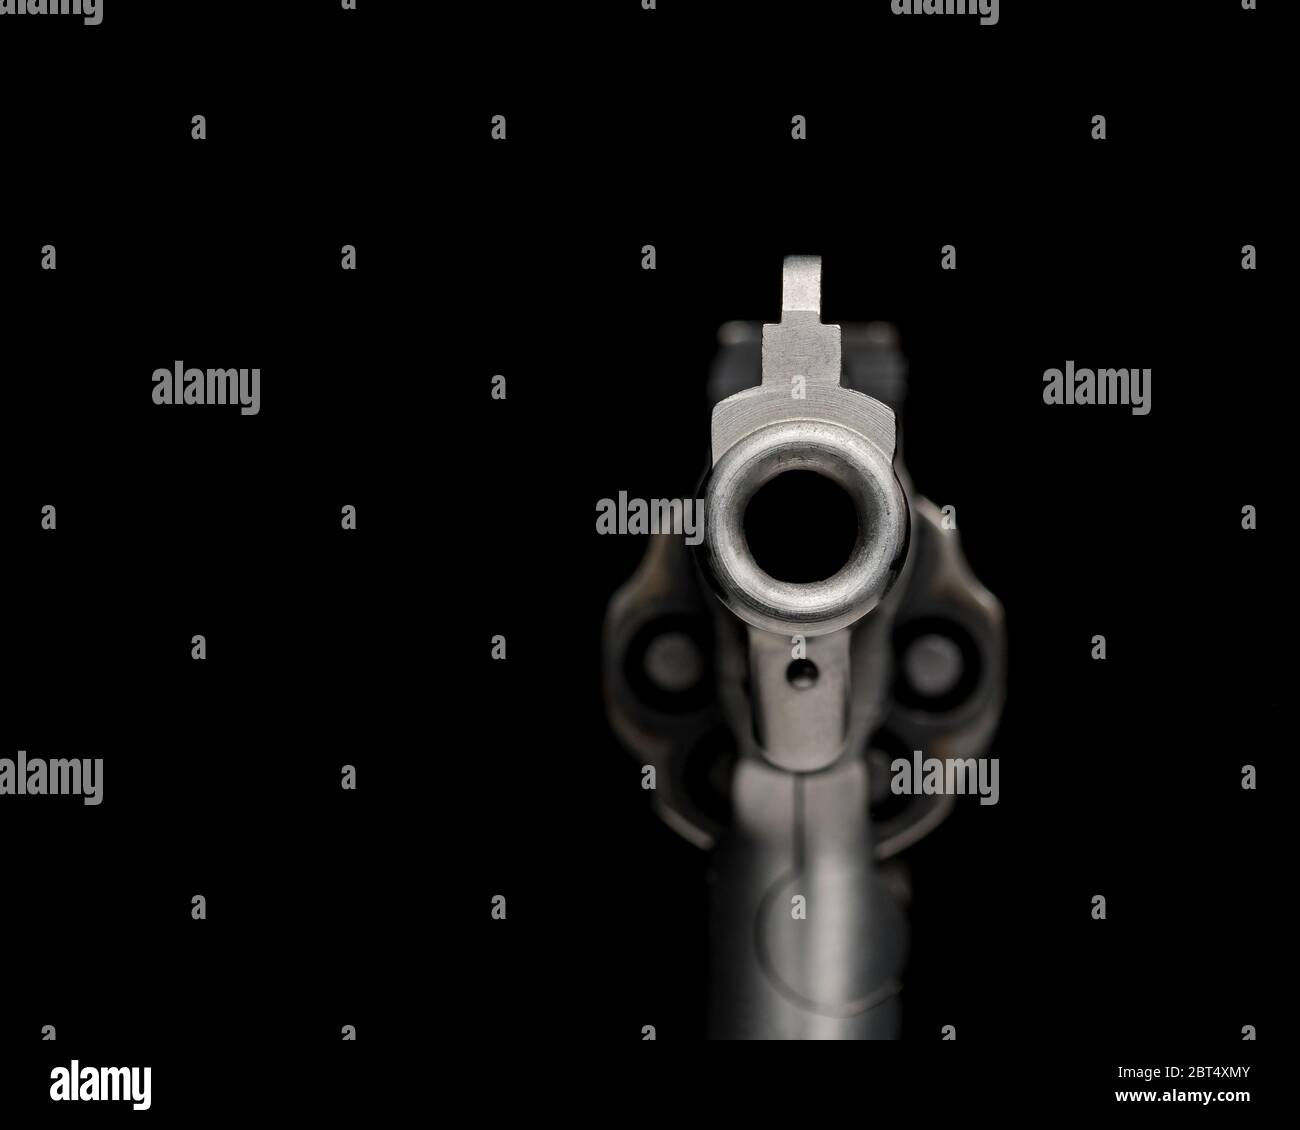 Looking down barrel of gun, pointed toward you, isolated on black background. Concept of crime, violence, shooting, firearm control and safety Stock Photo